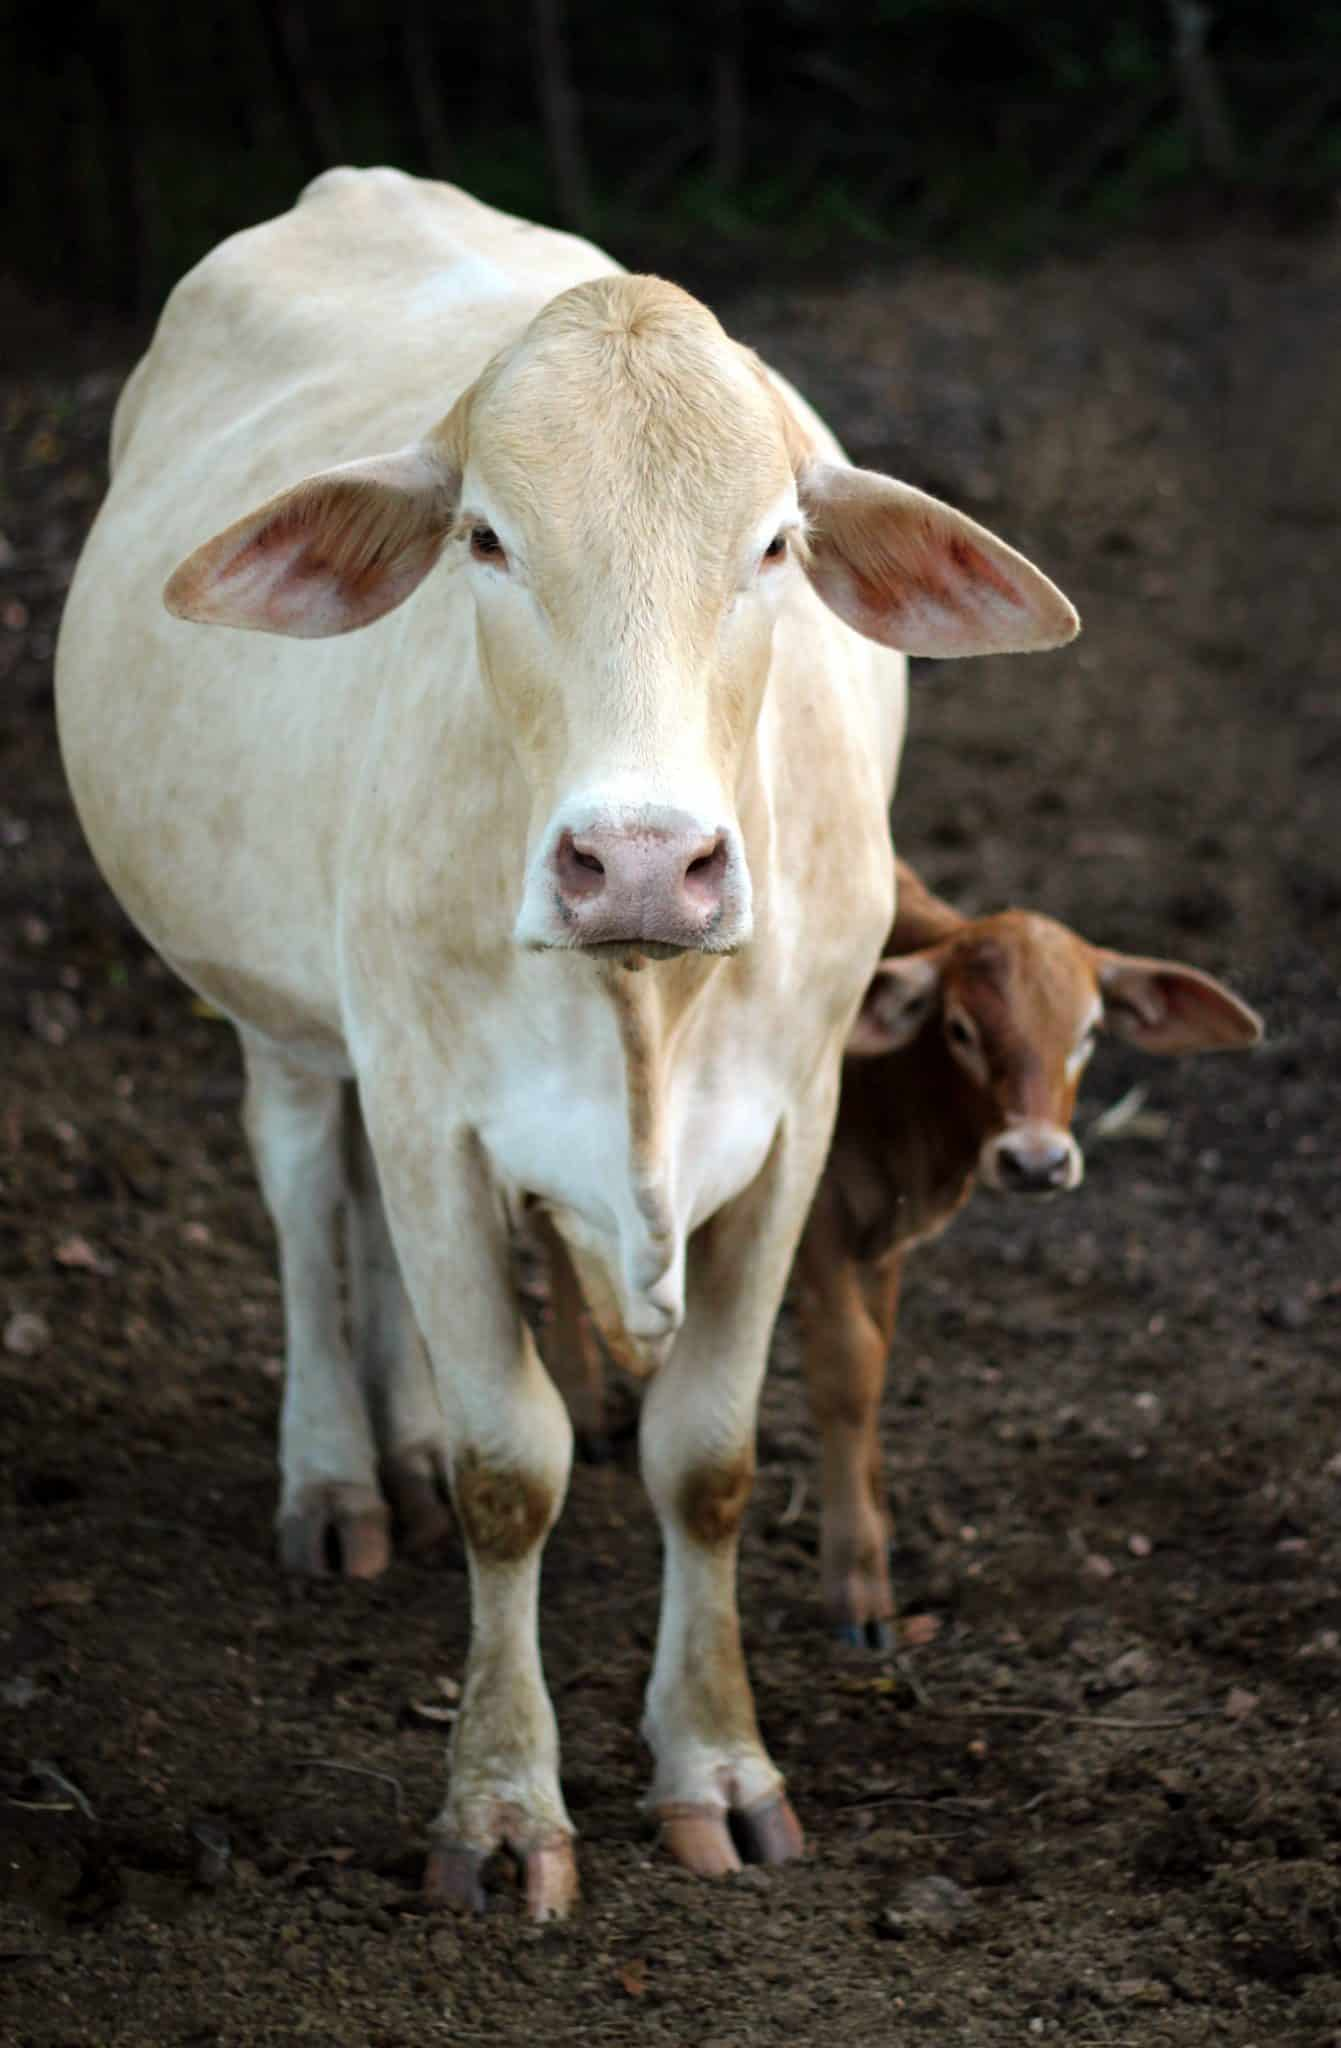 newly born baby calf with mom cow